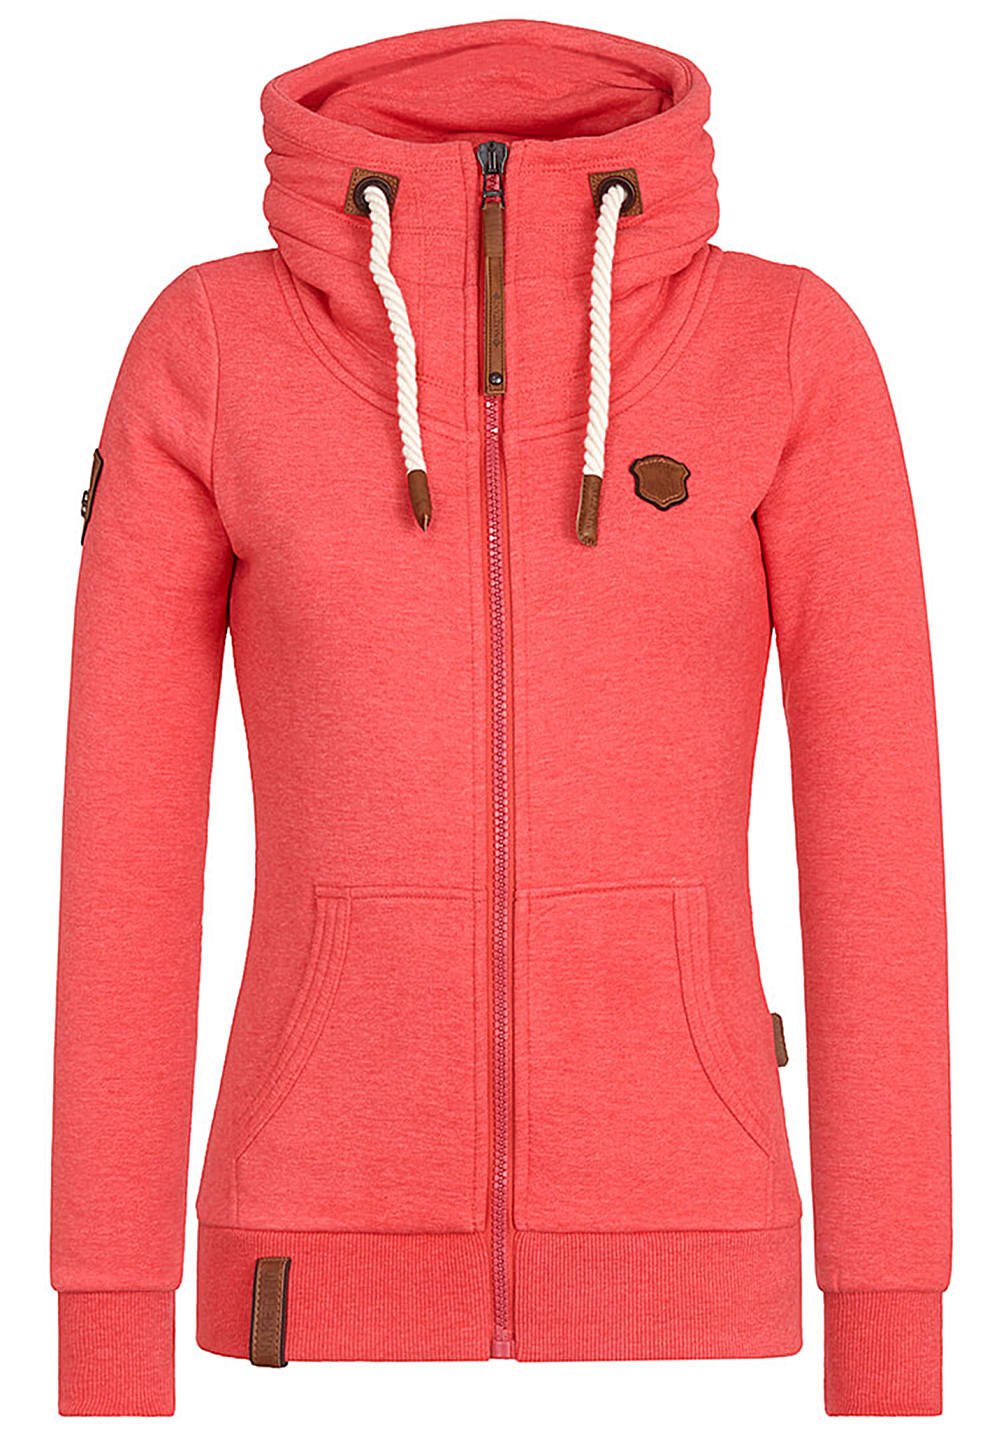 Naketano Monsterbumserin Pimped Sweatjacke für Damen Rot